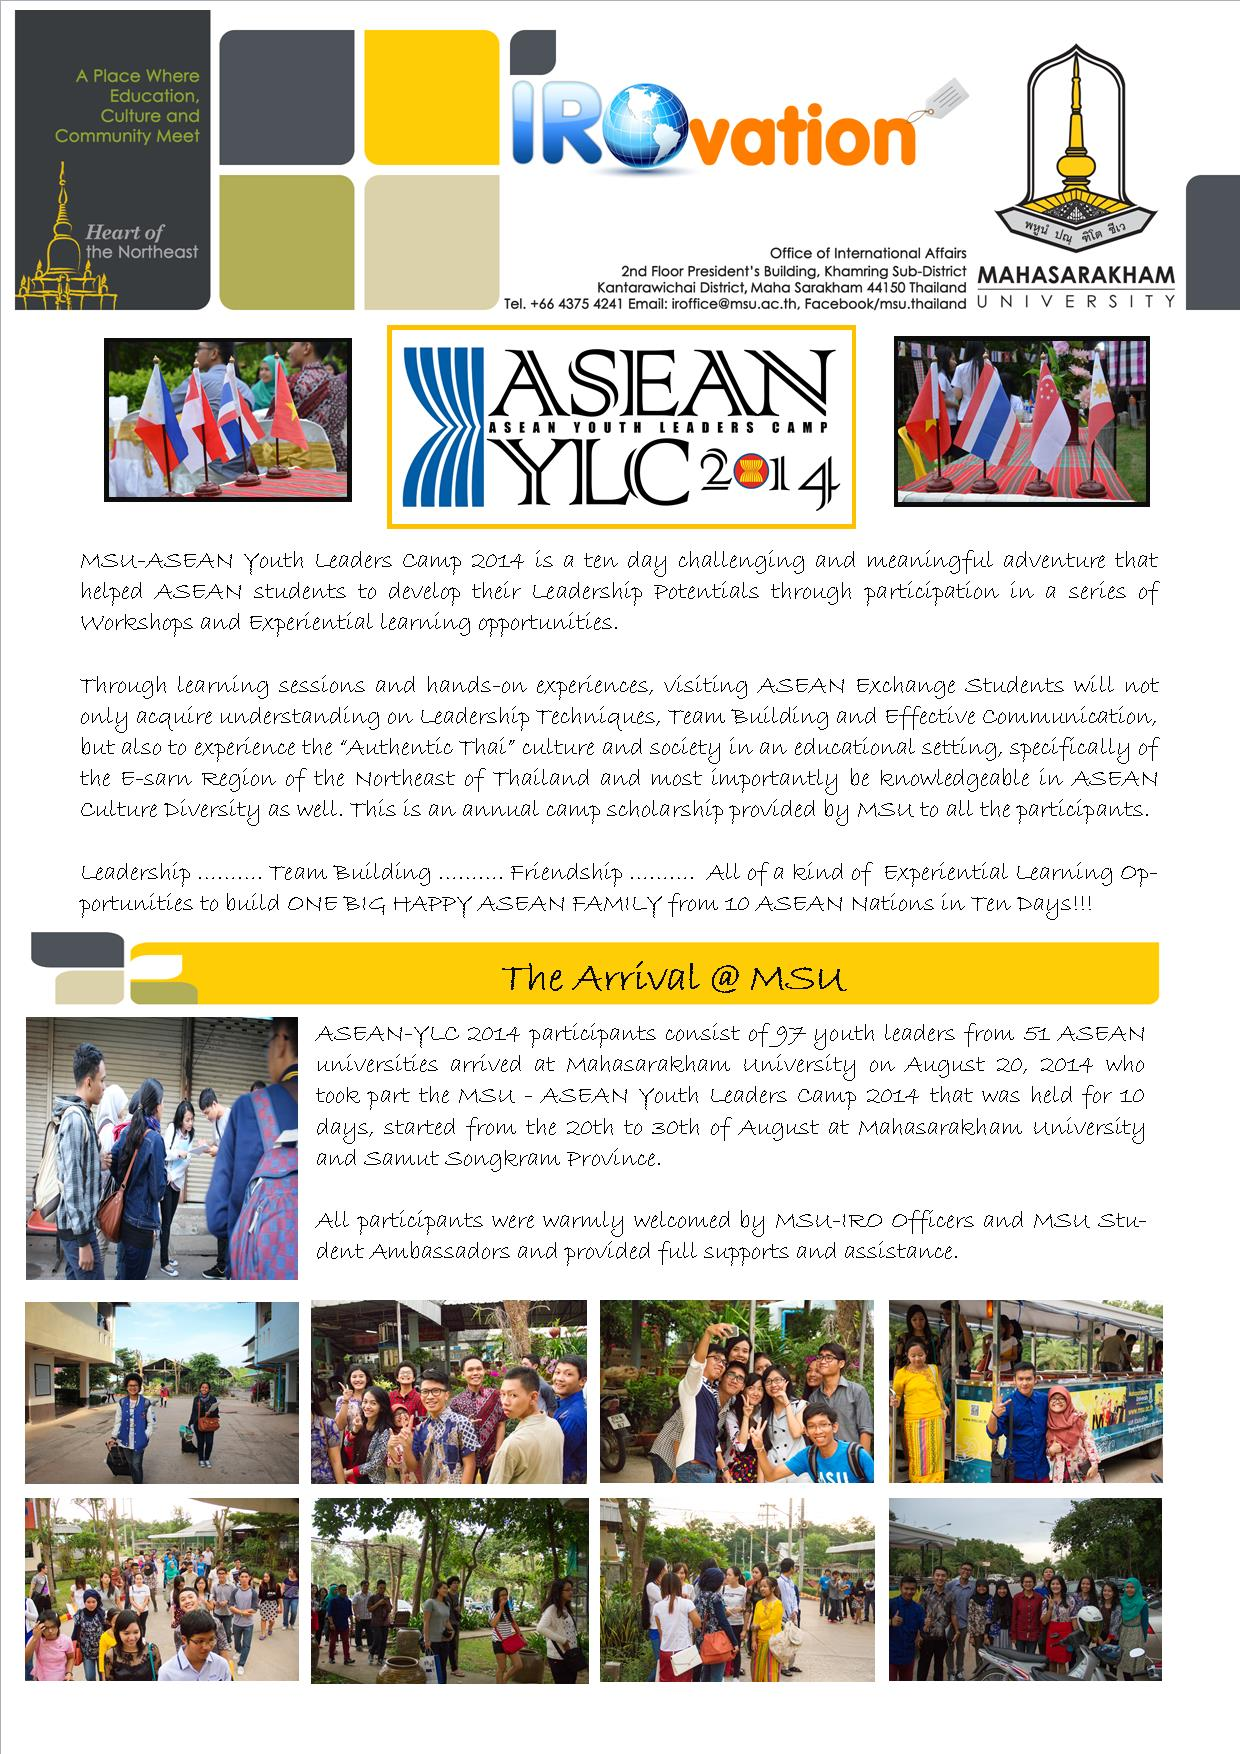 The Success of MSU-ASEAN Youth Leaders Camp 2014